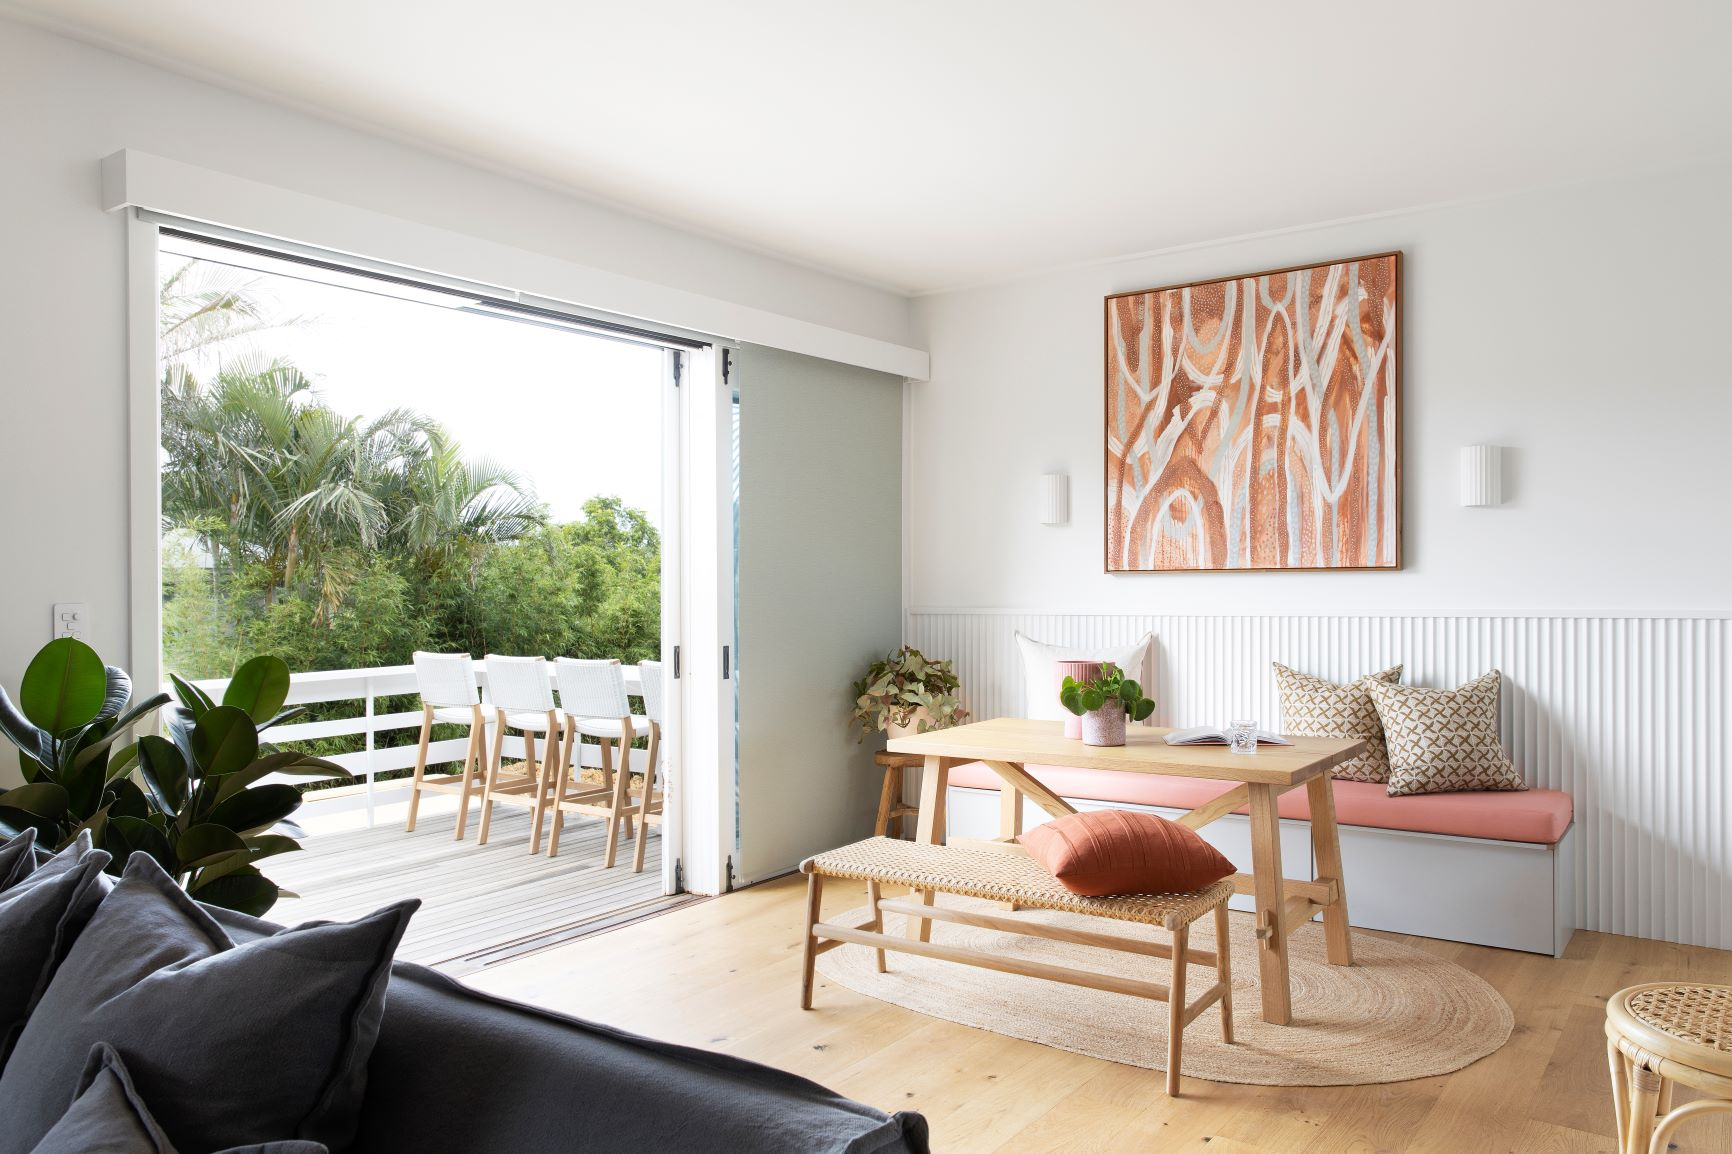 From 1950s surf shack to stylish Byron Bay Beach house